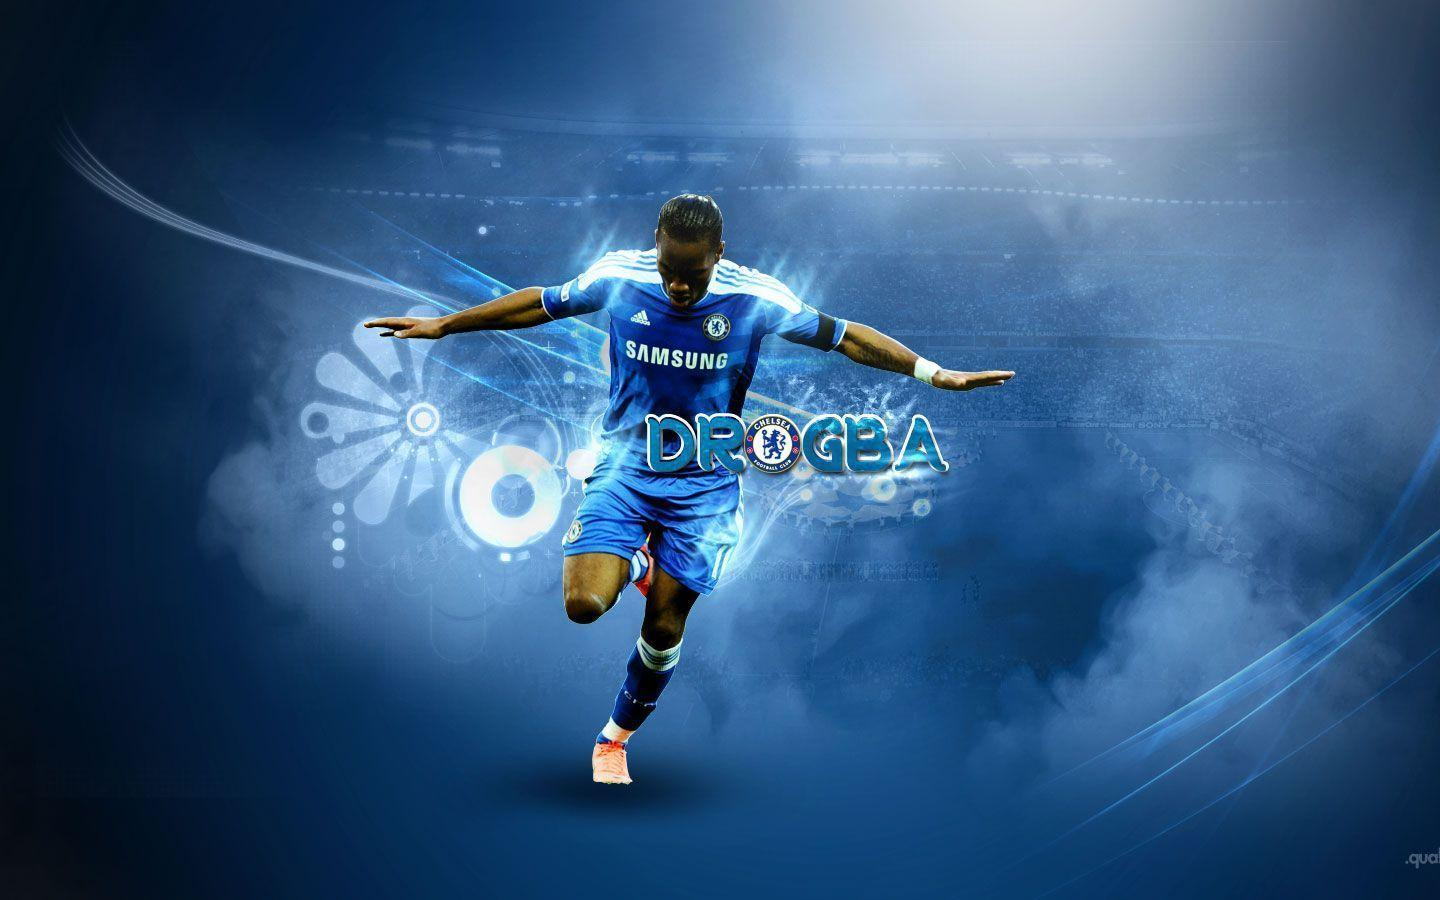 Drogba Chelsea Wallpapers